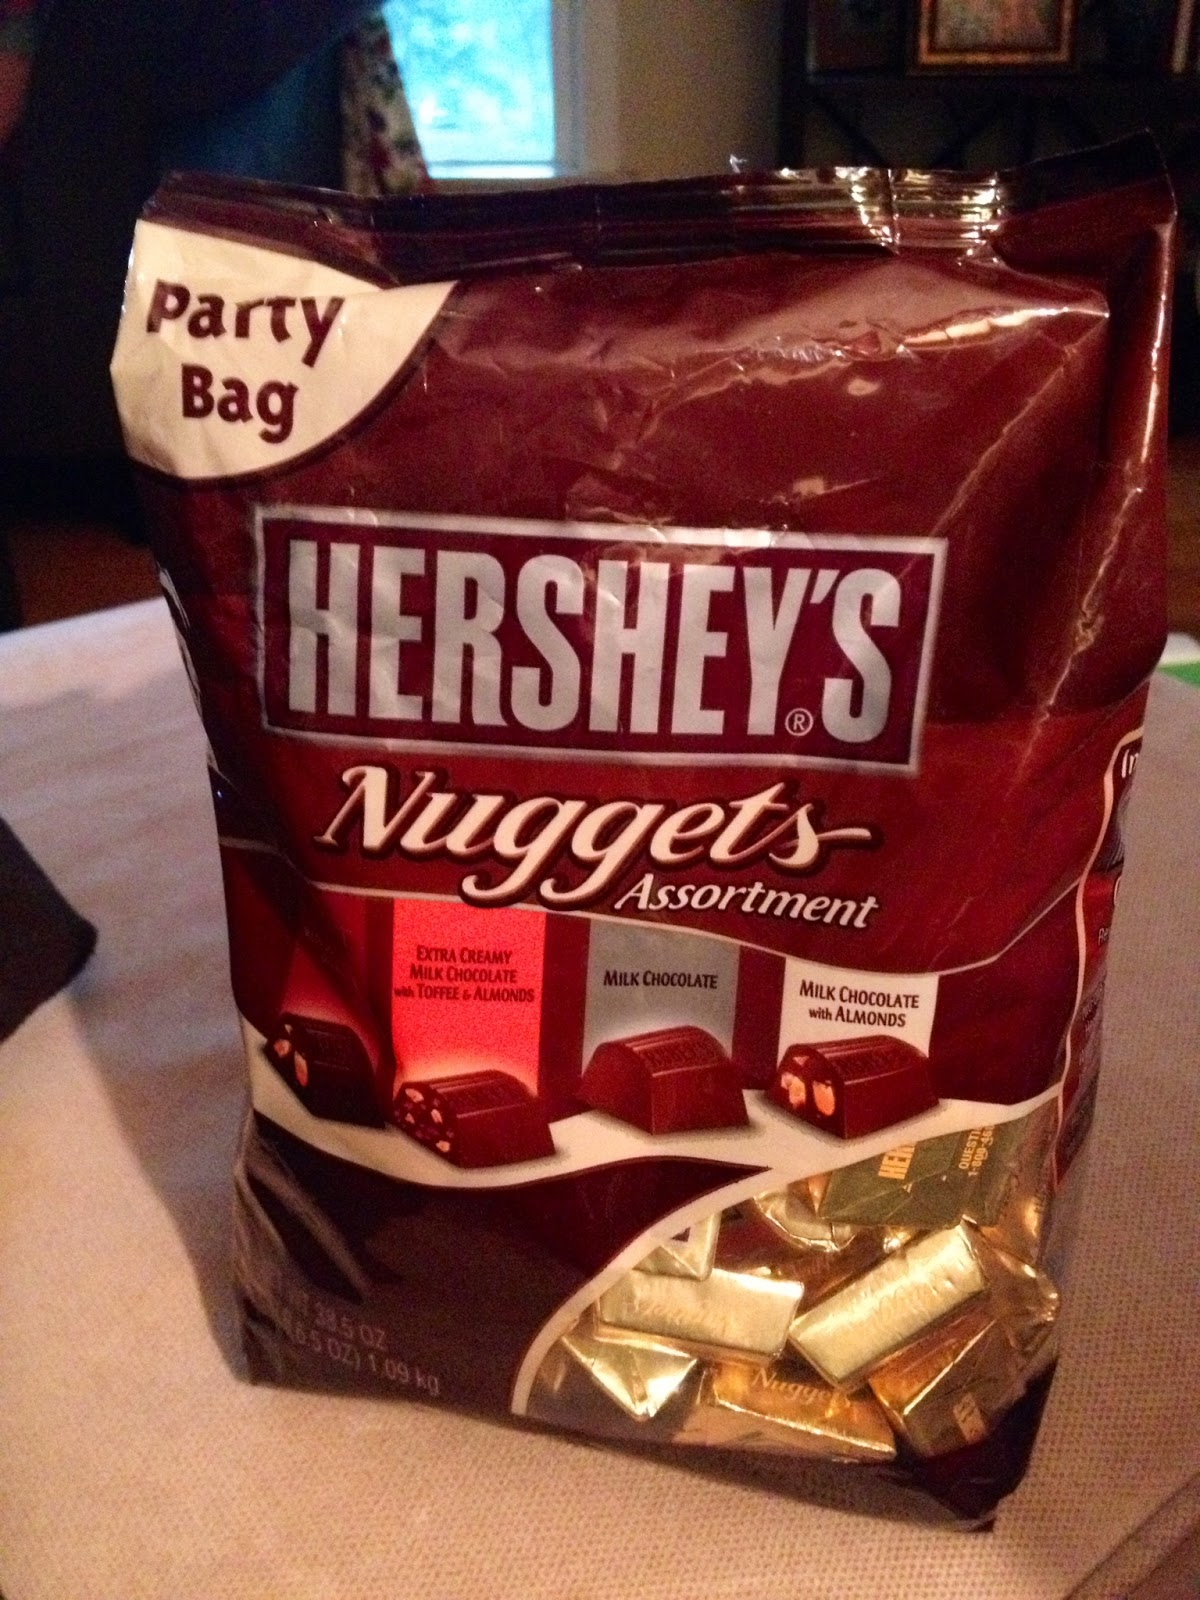 and I may or may not have put a good dent in this bag.